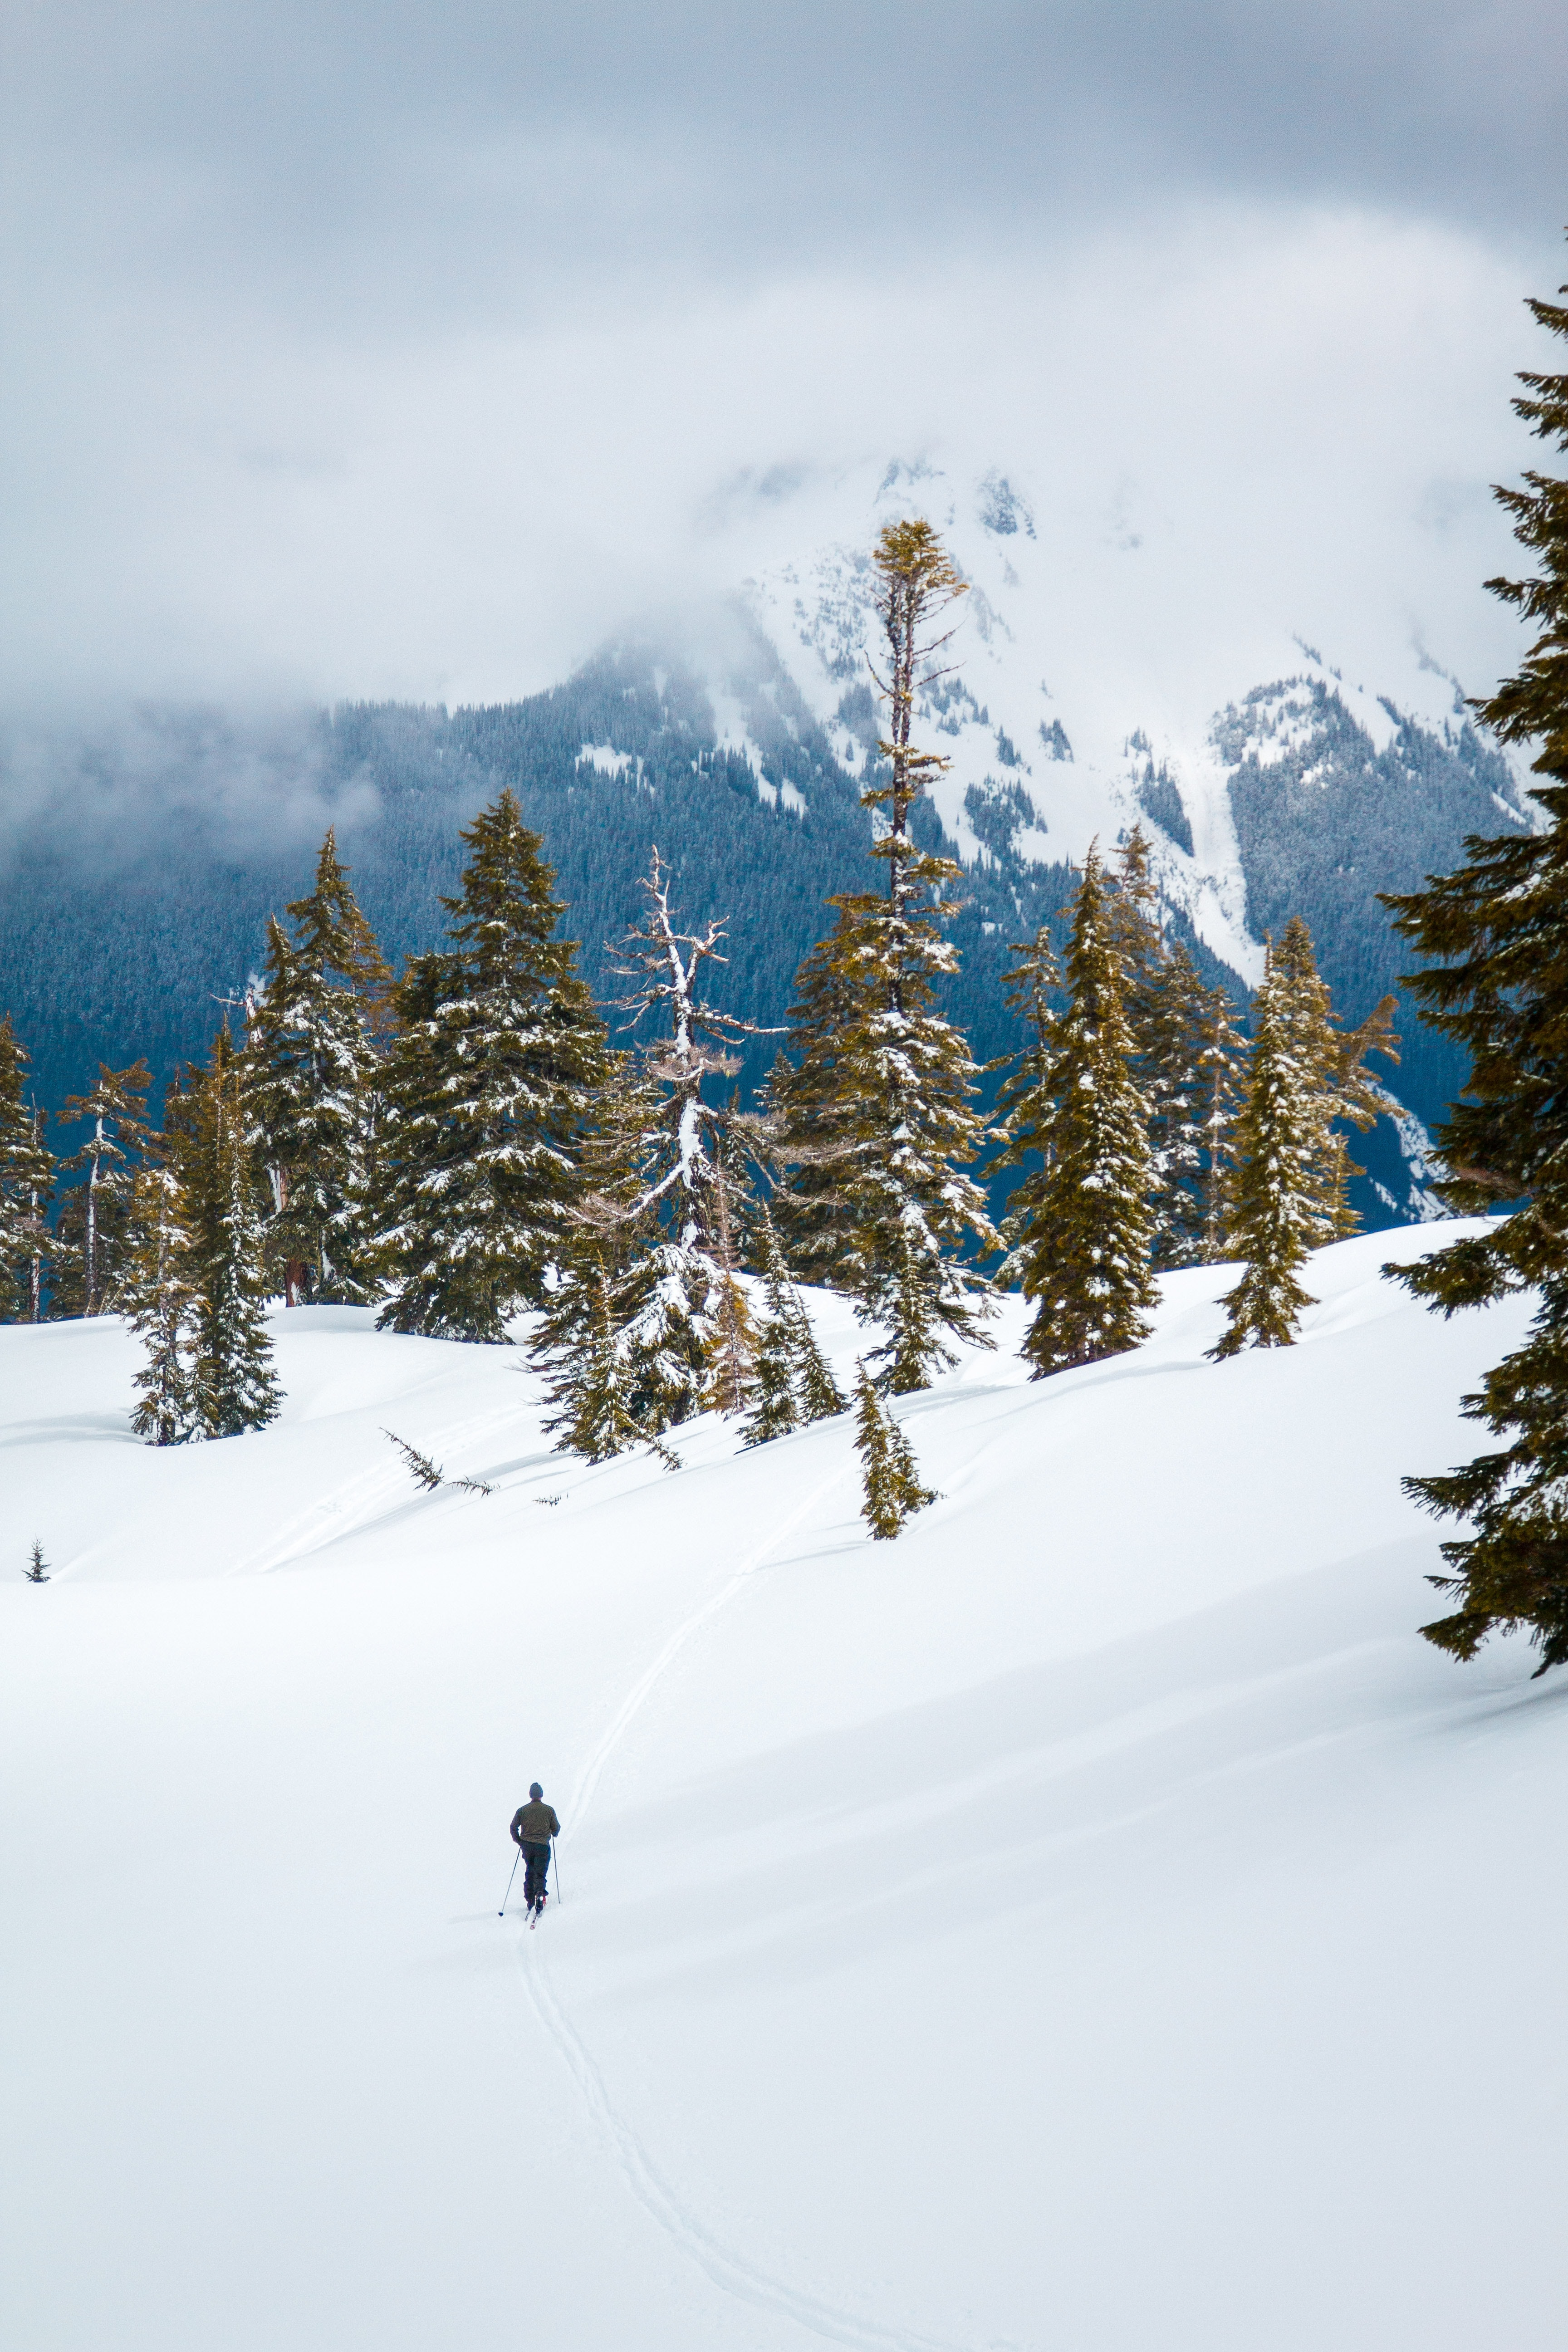 A skier on a snowy slope with sparse trees in the mountains